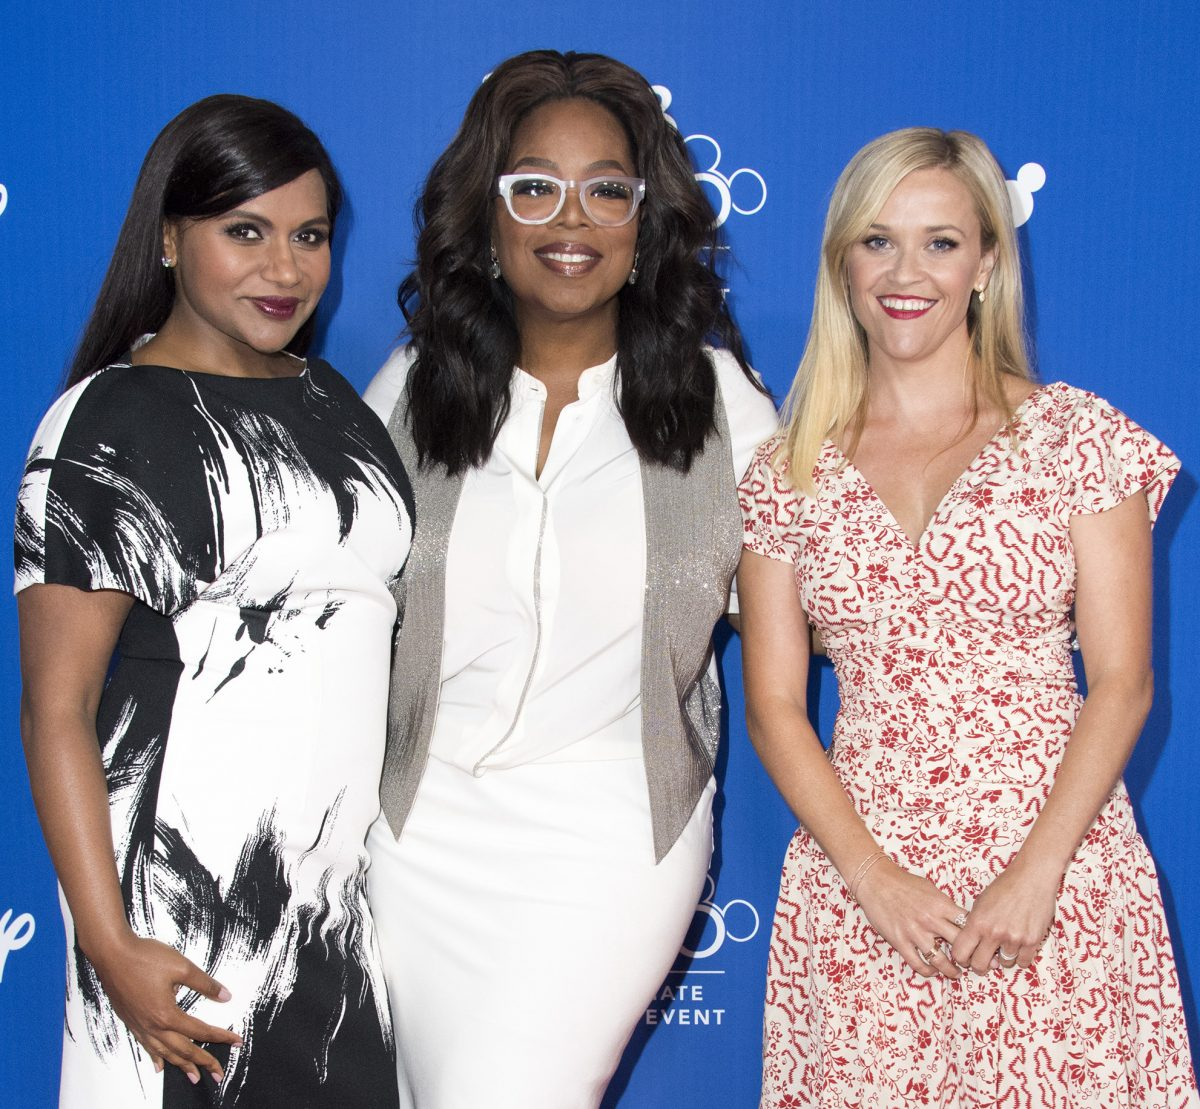 Minsy Kaling, Oprah Winfrey, and Reese Witherspoon